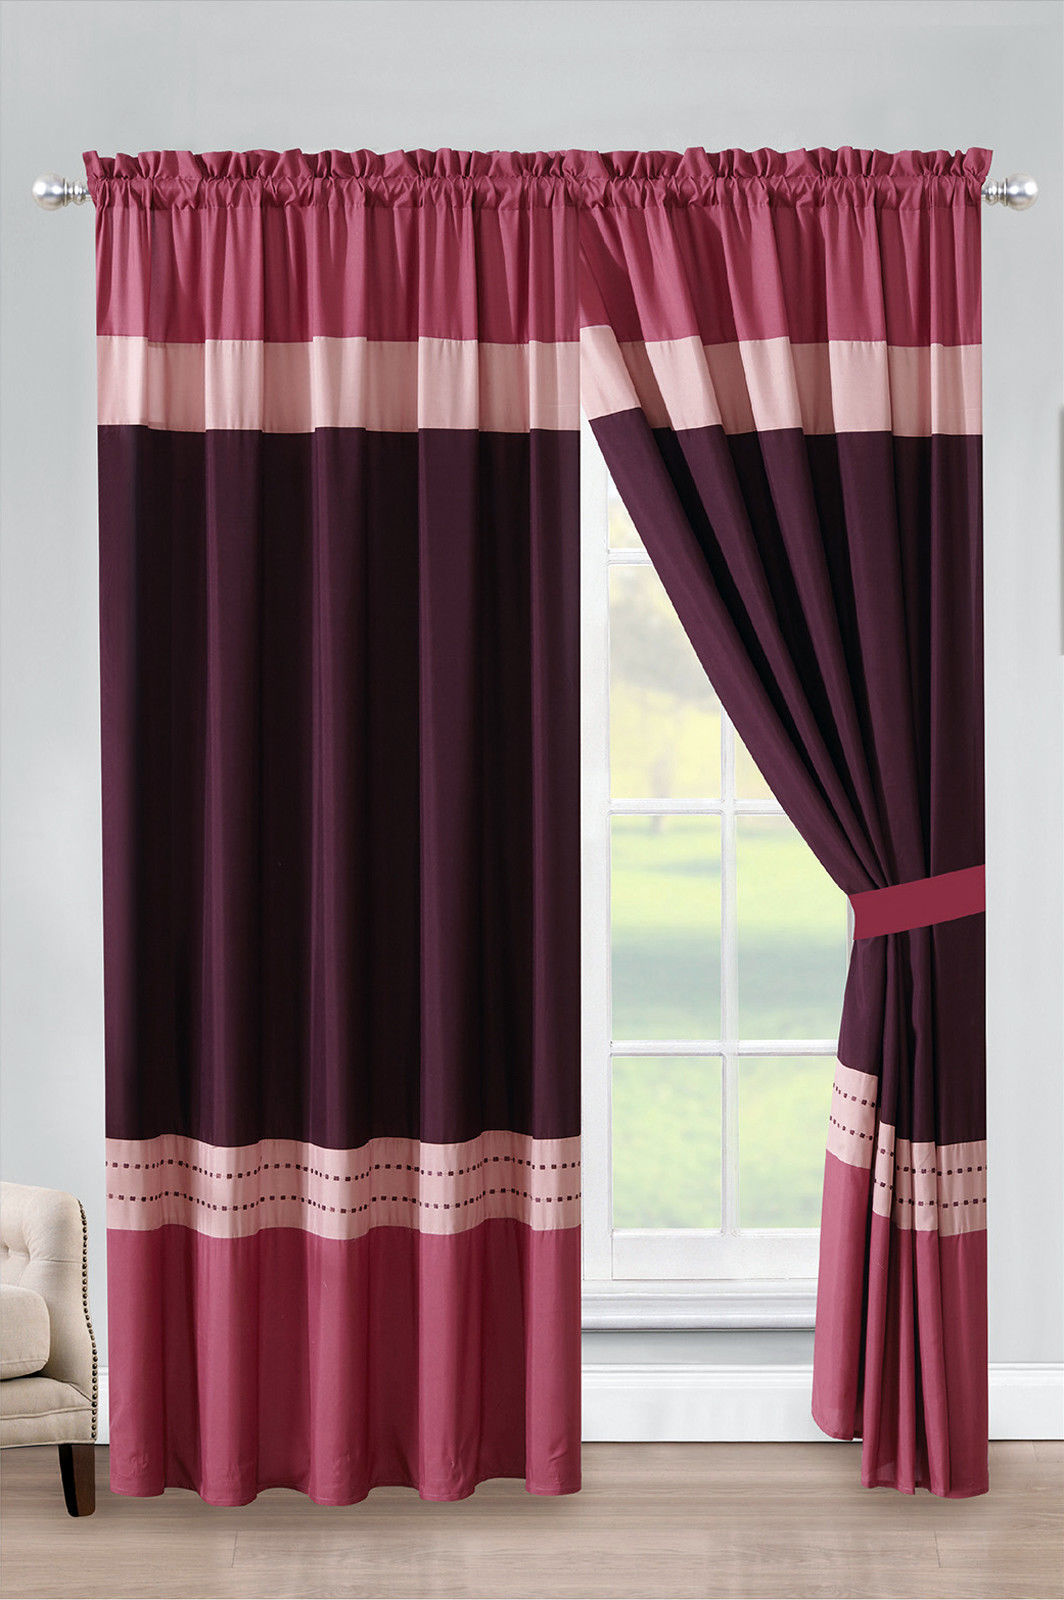 Primary image for 4-P Liana Stripe Embroidery Curtain Set Rose Pink Purple Rouge Punch Sheer Liner